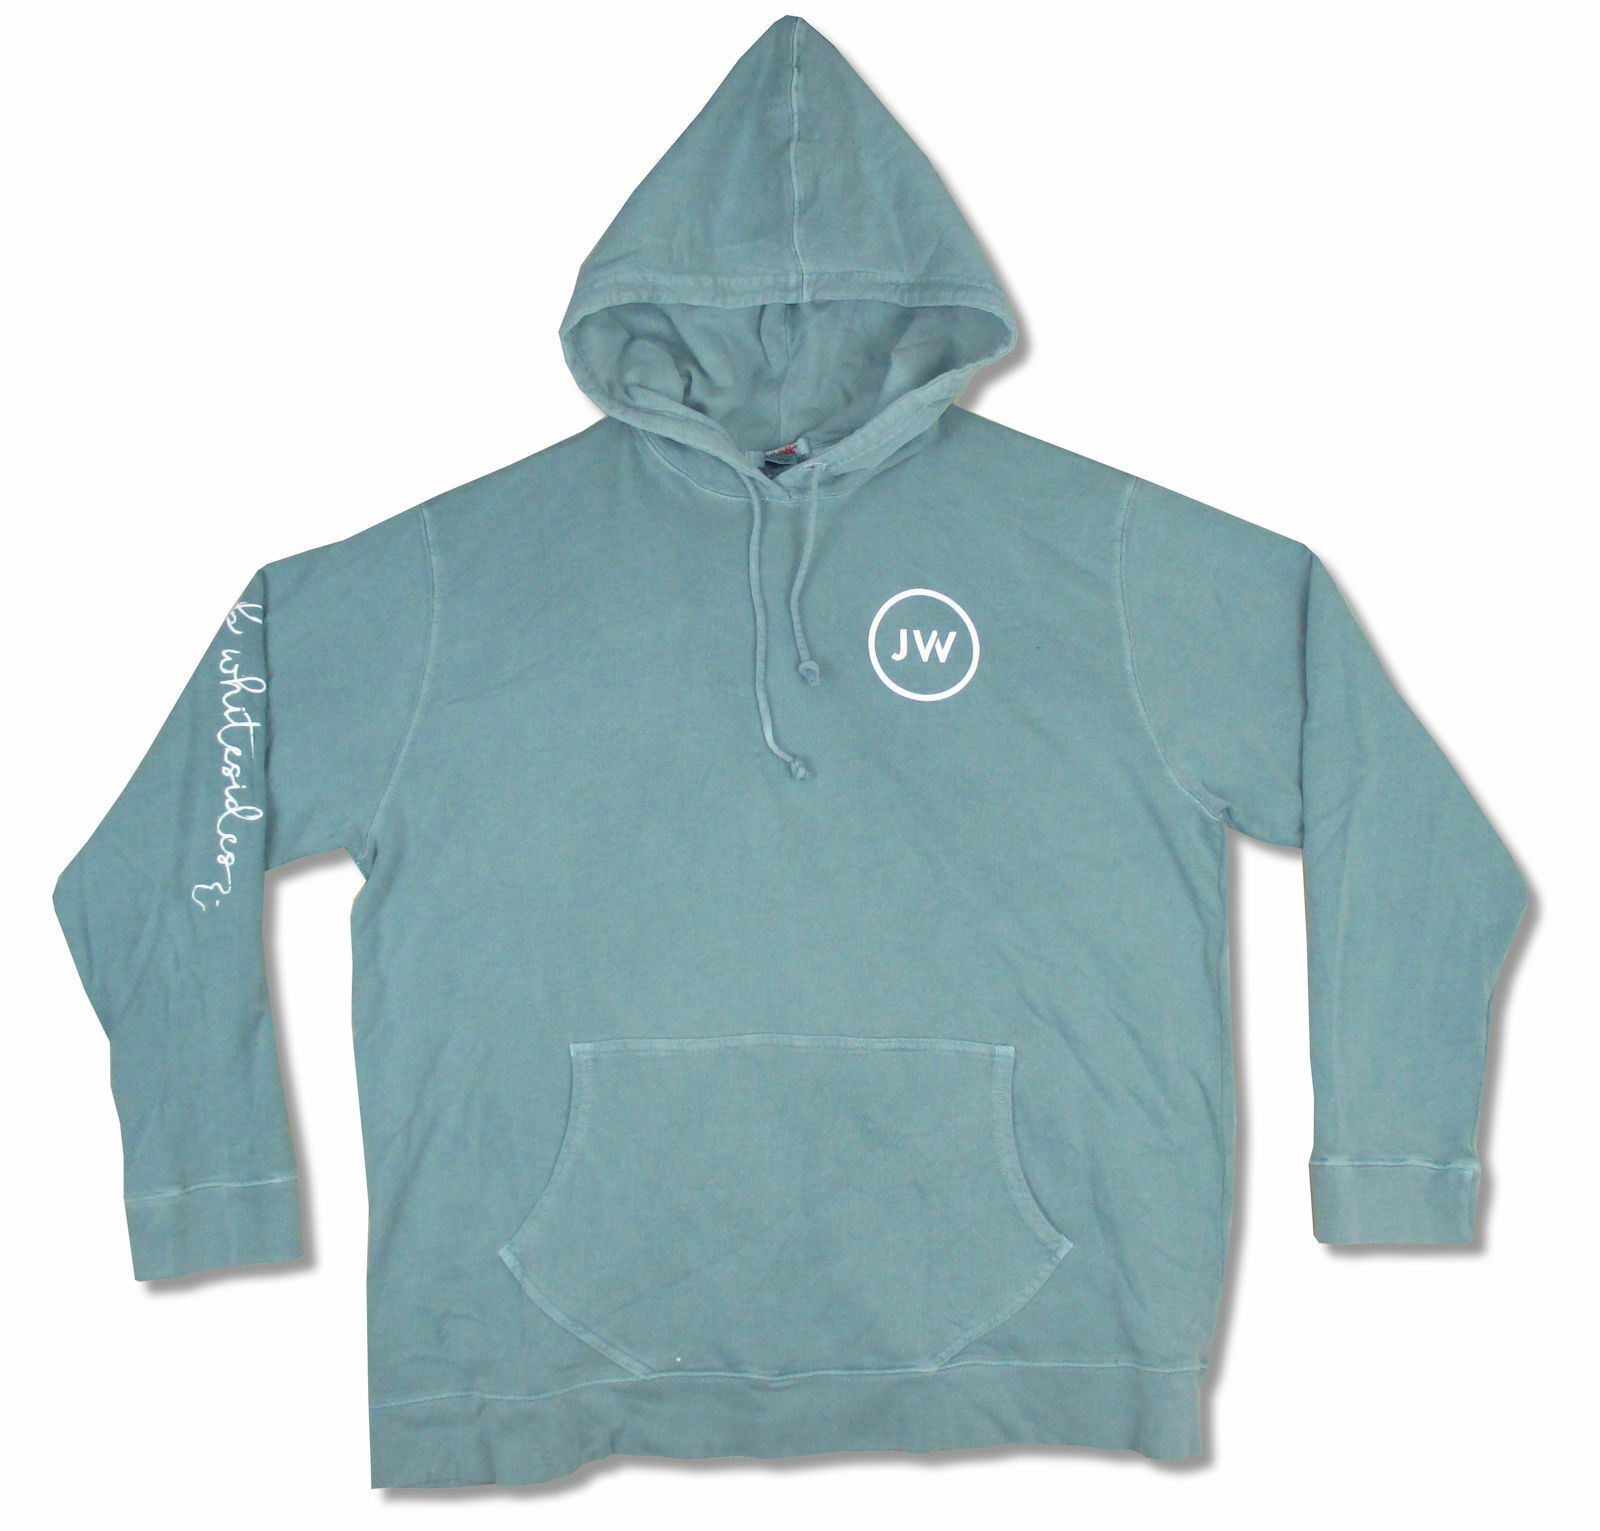 Jacob Whitesides JW Logo Teal Green Pull Over Sweatshirt Hoodie New Official